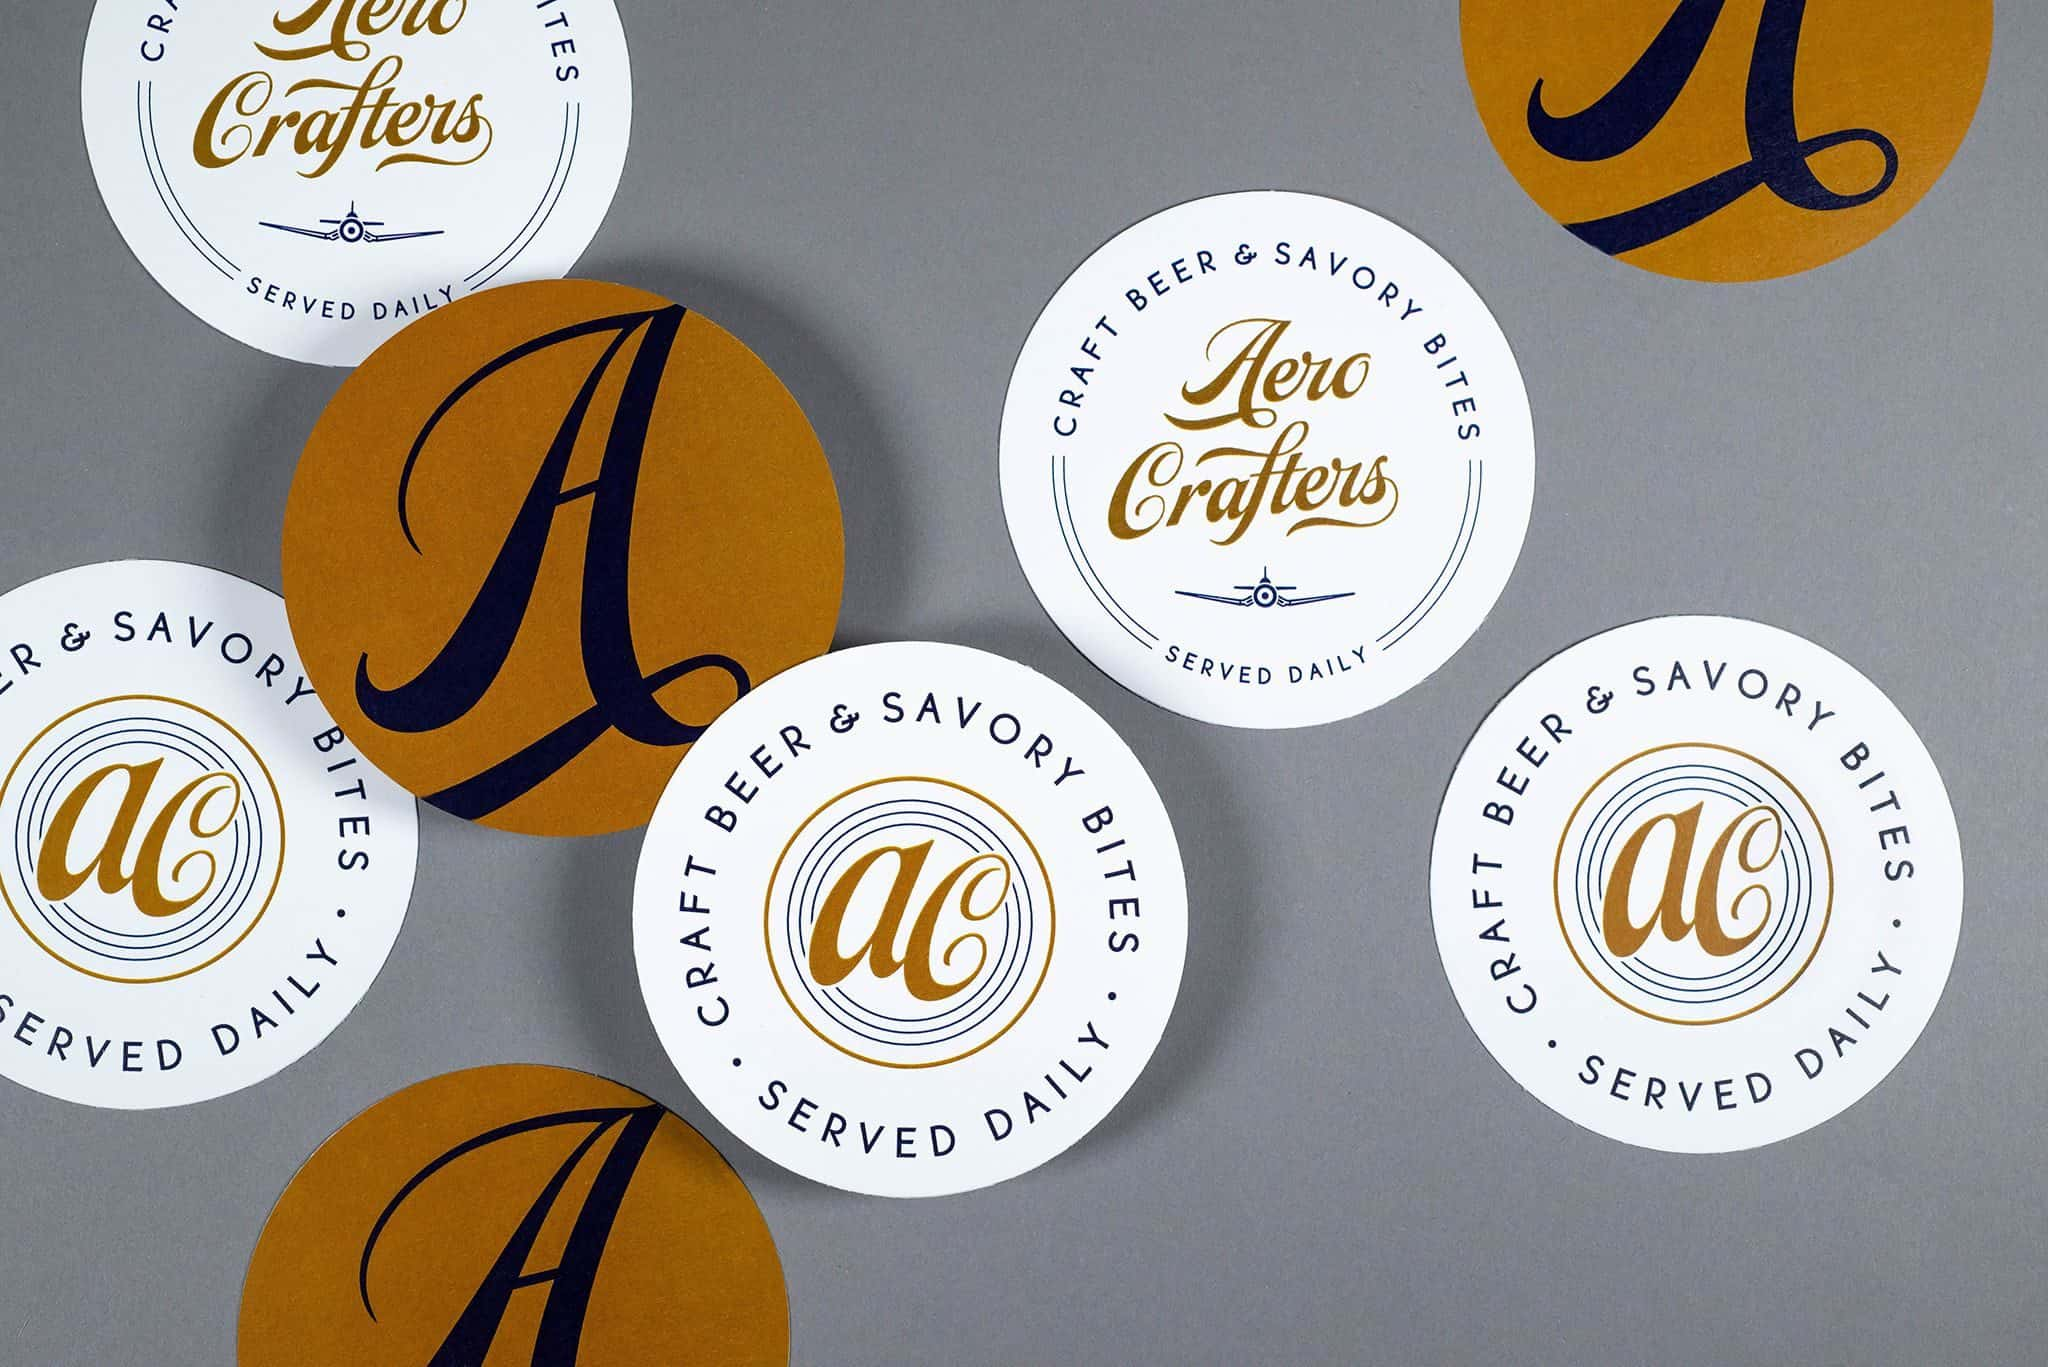 Custom Beer Coasters for Aero Crafters Beer Garden, Victoria | Designed by Field of Study: A branding and graphic design consultancy | Houston TX | Jennifer Blanco & John Earles